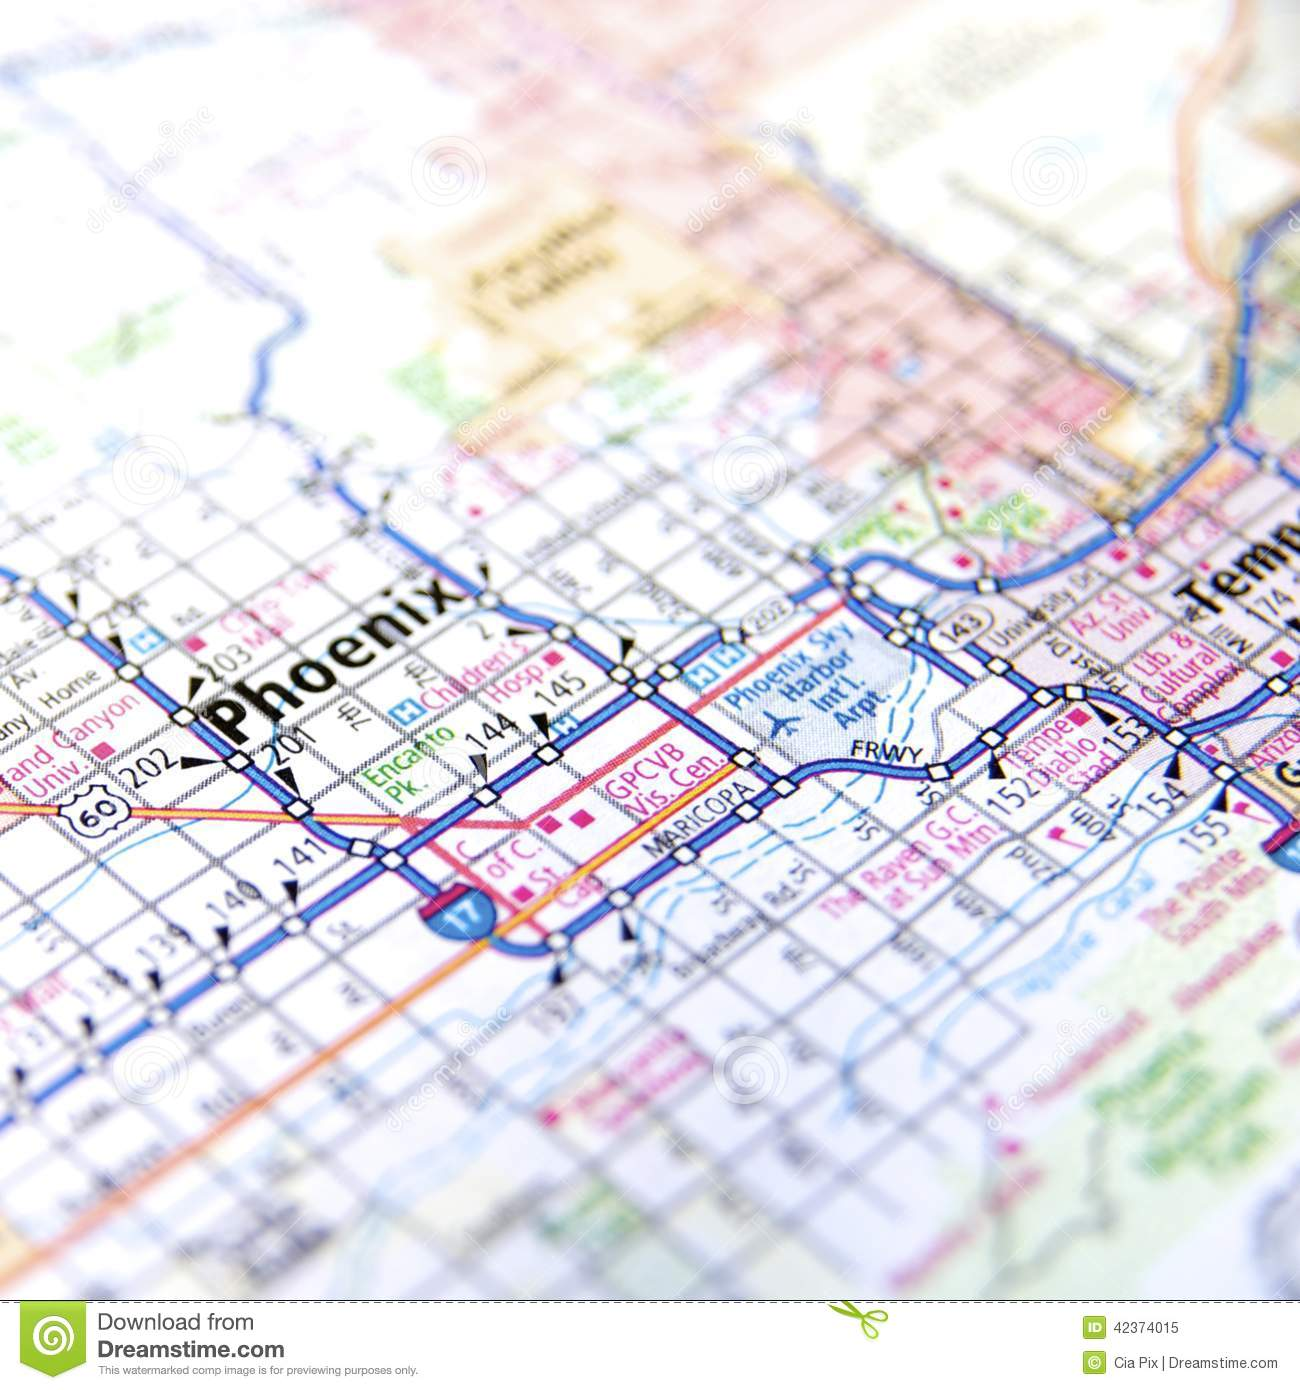 Highway Map Of Phoenix Arizona Stock Image - Image of places, grid ...